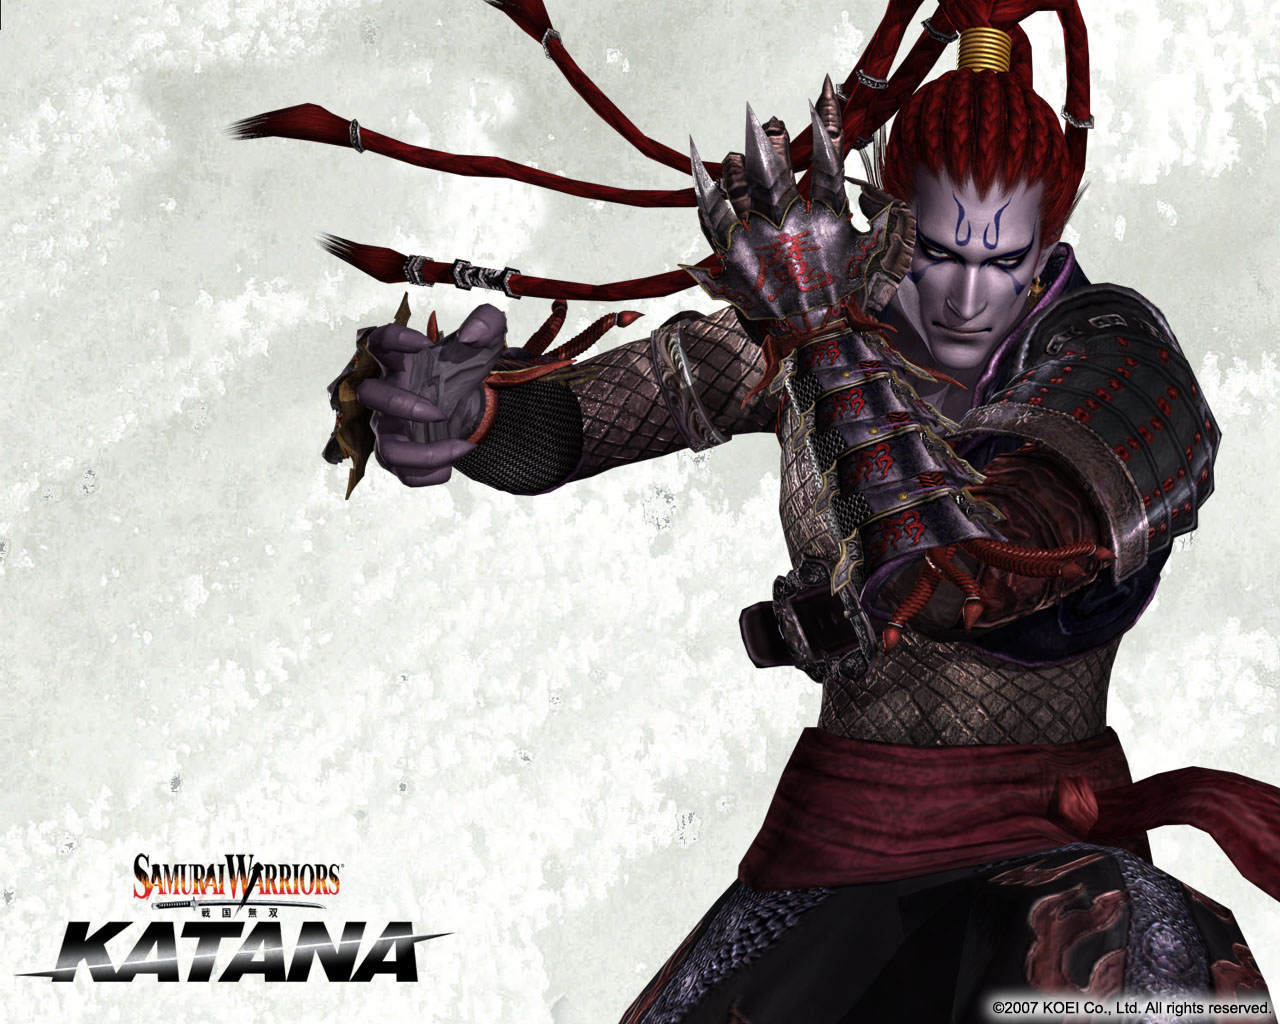 Free Download Samurai Warriors Katana 1280x1024 For Your